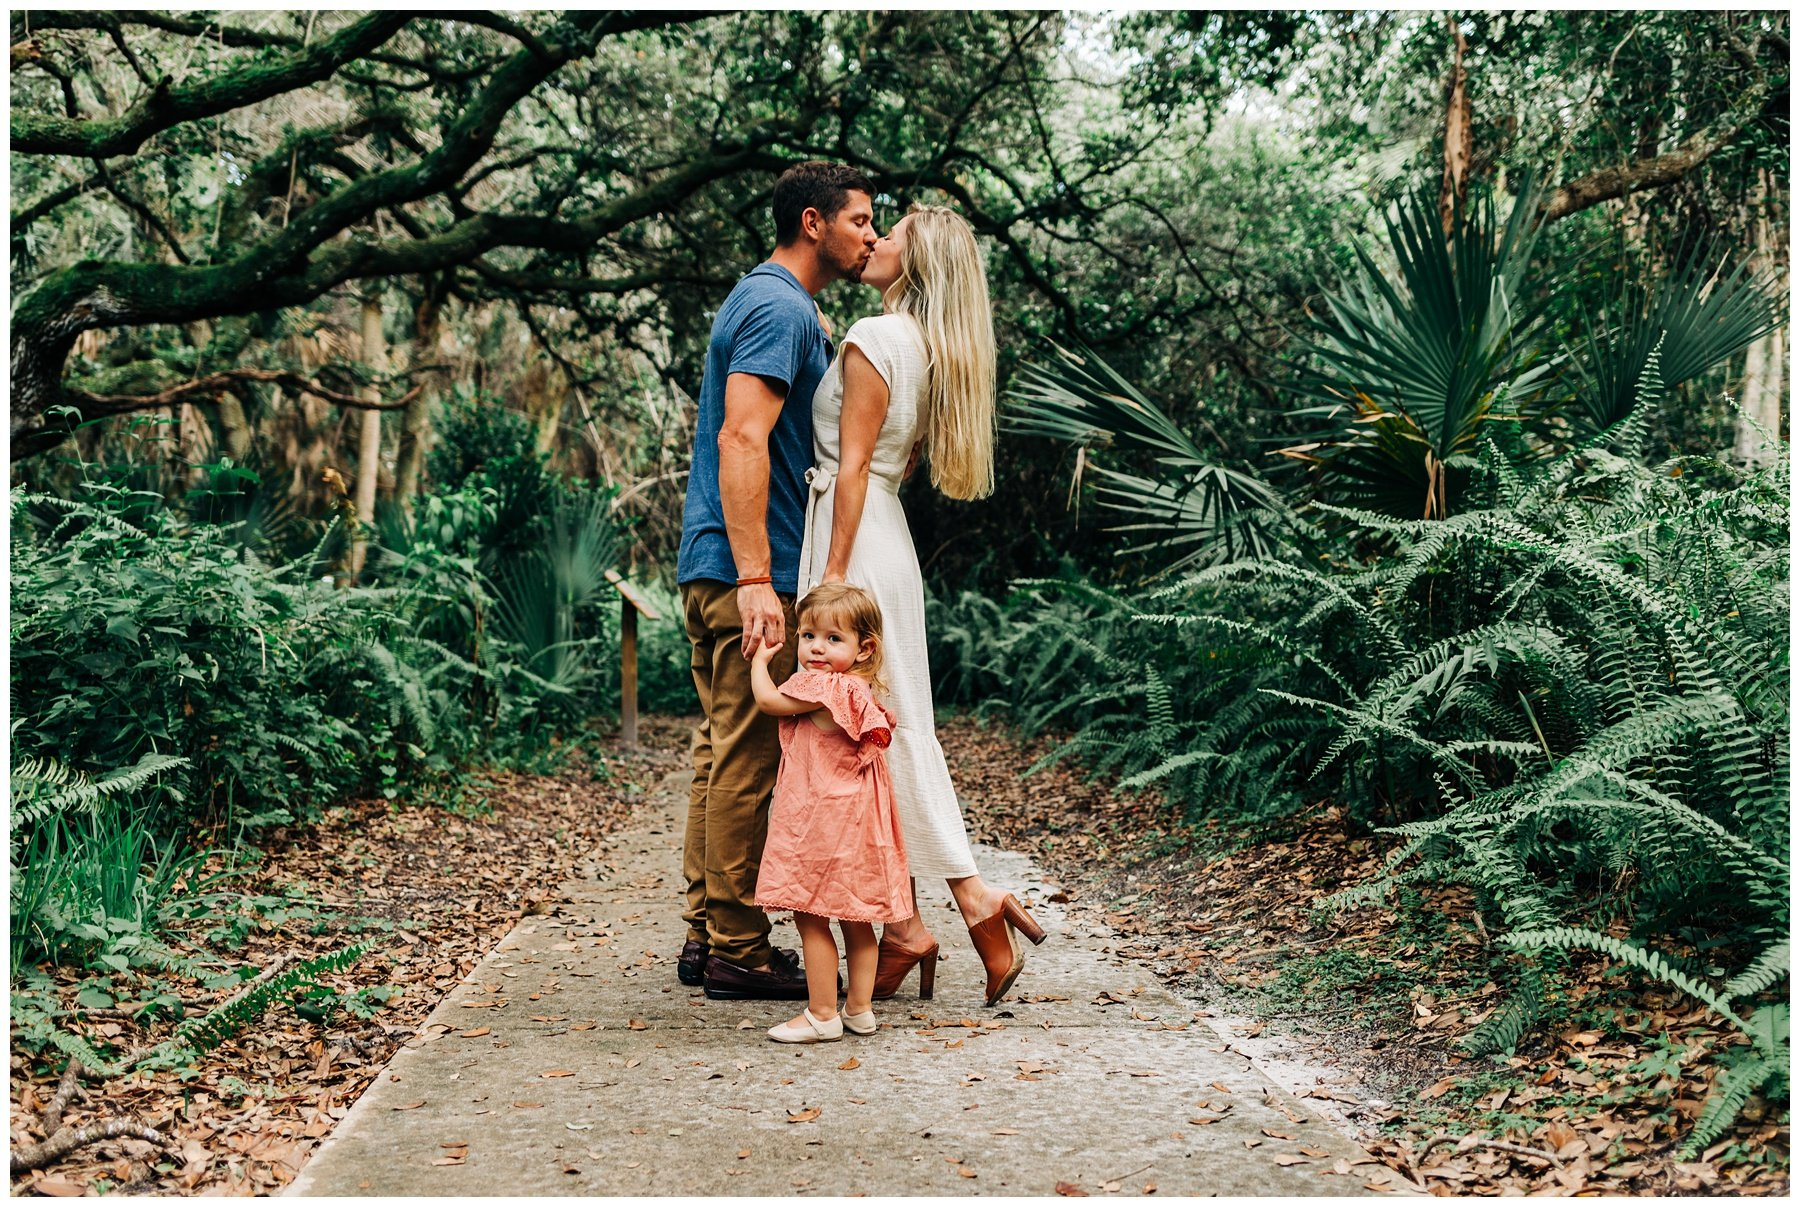 Family session at Delray Oaks Natural Area